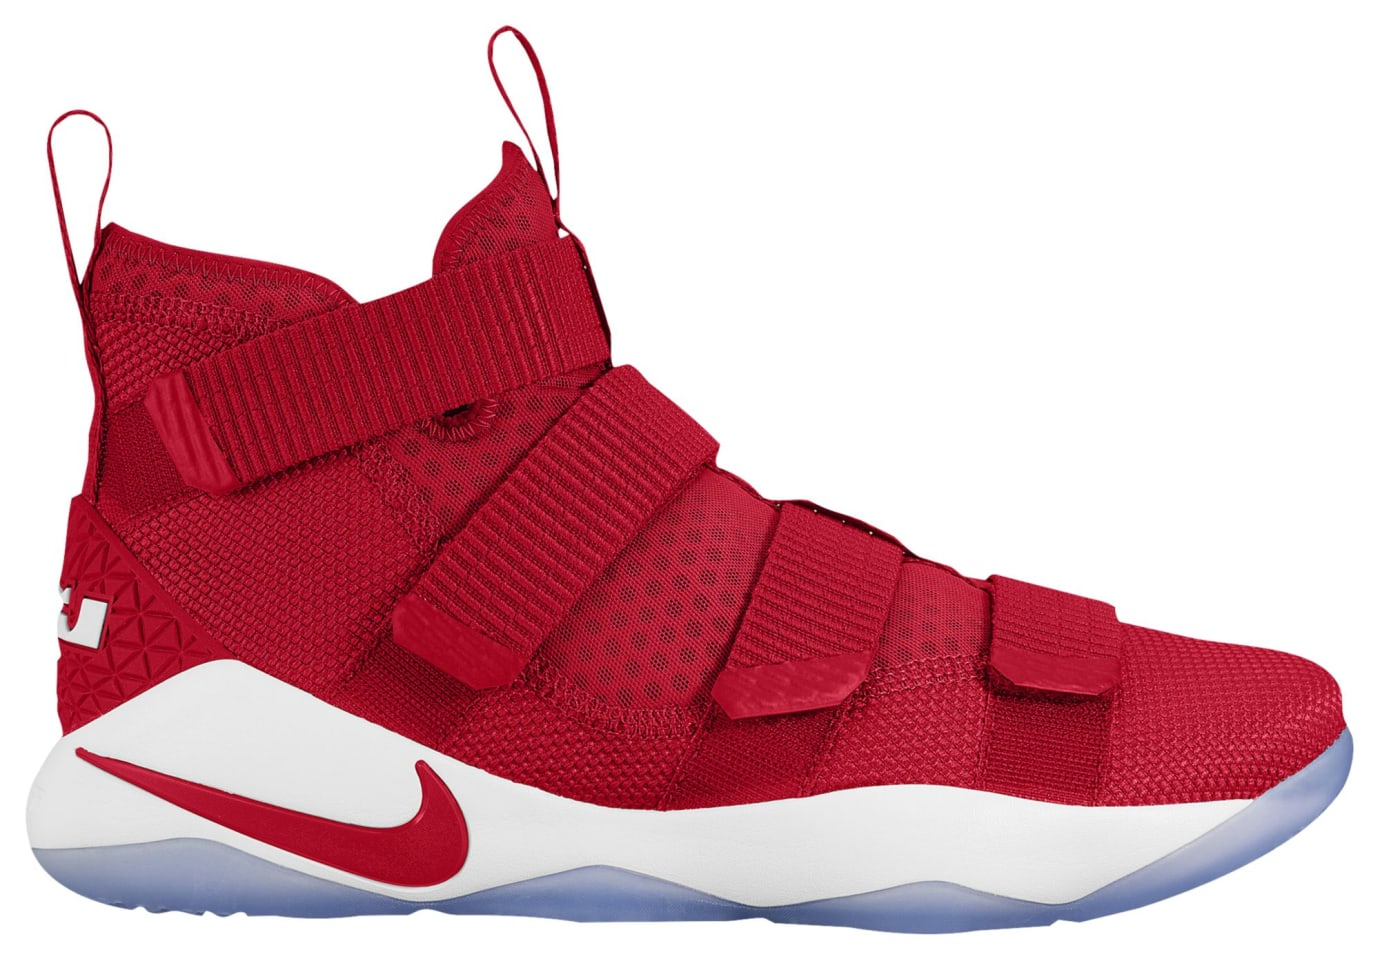 Nike LeBron Soldier 11 TB University Red